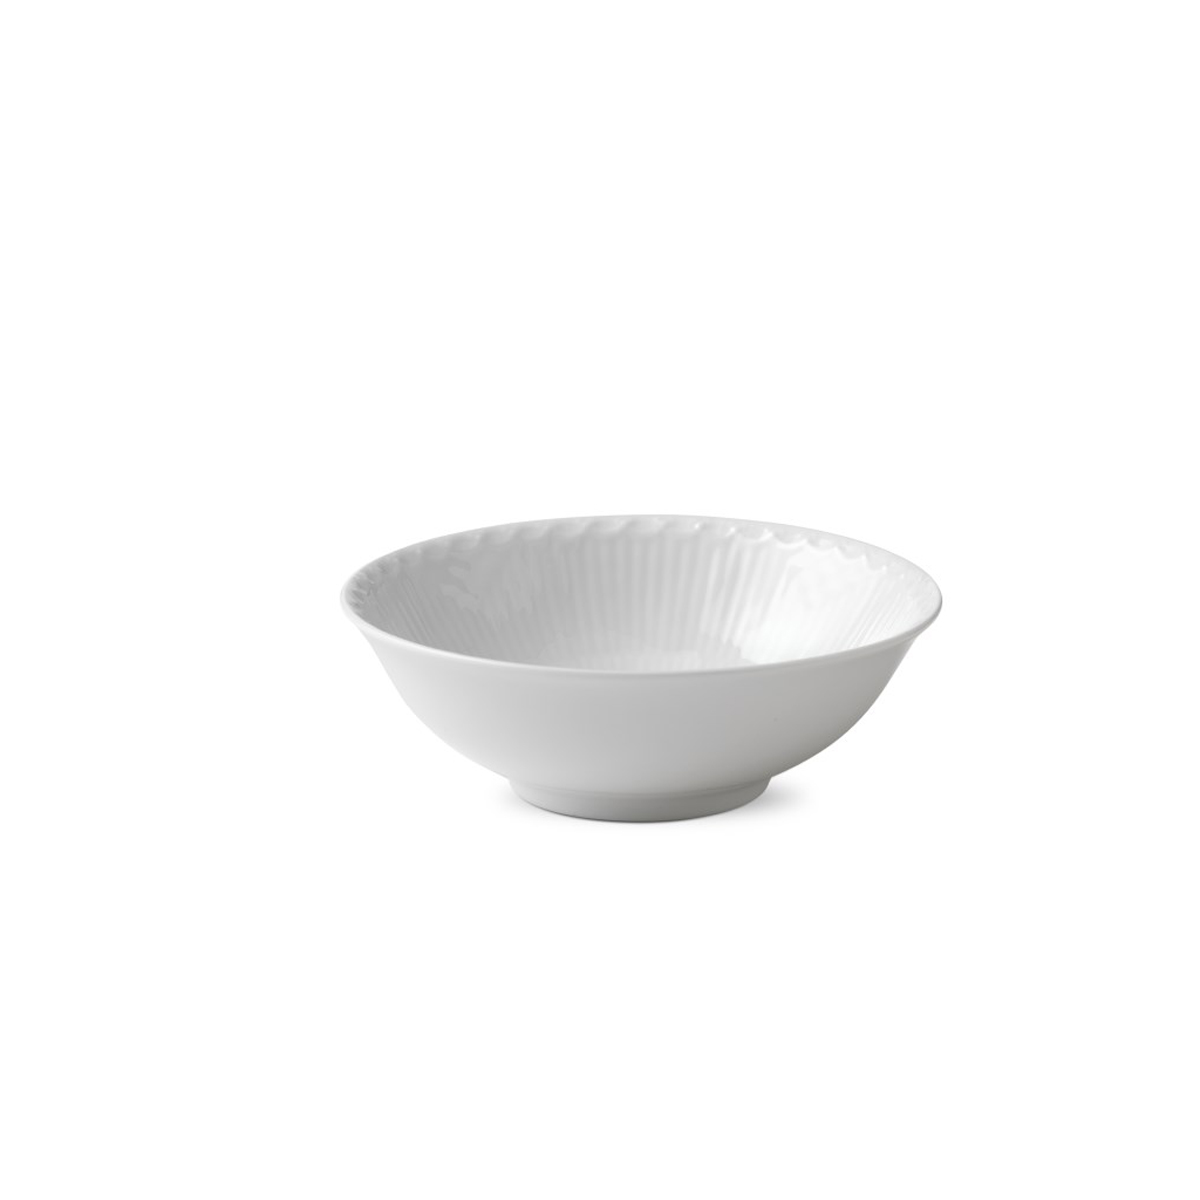 Royal Copenhagen, White Fluted Half Lace Cereal Bowl 11.75oz.